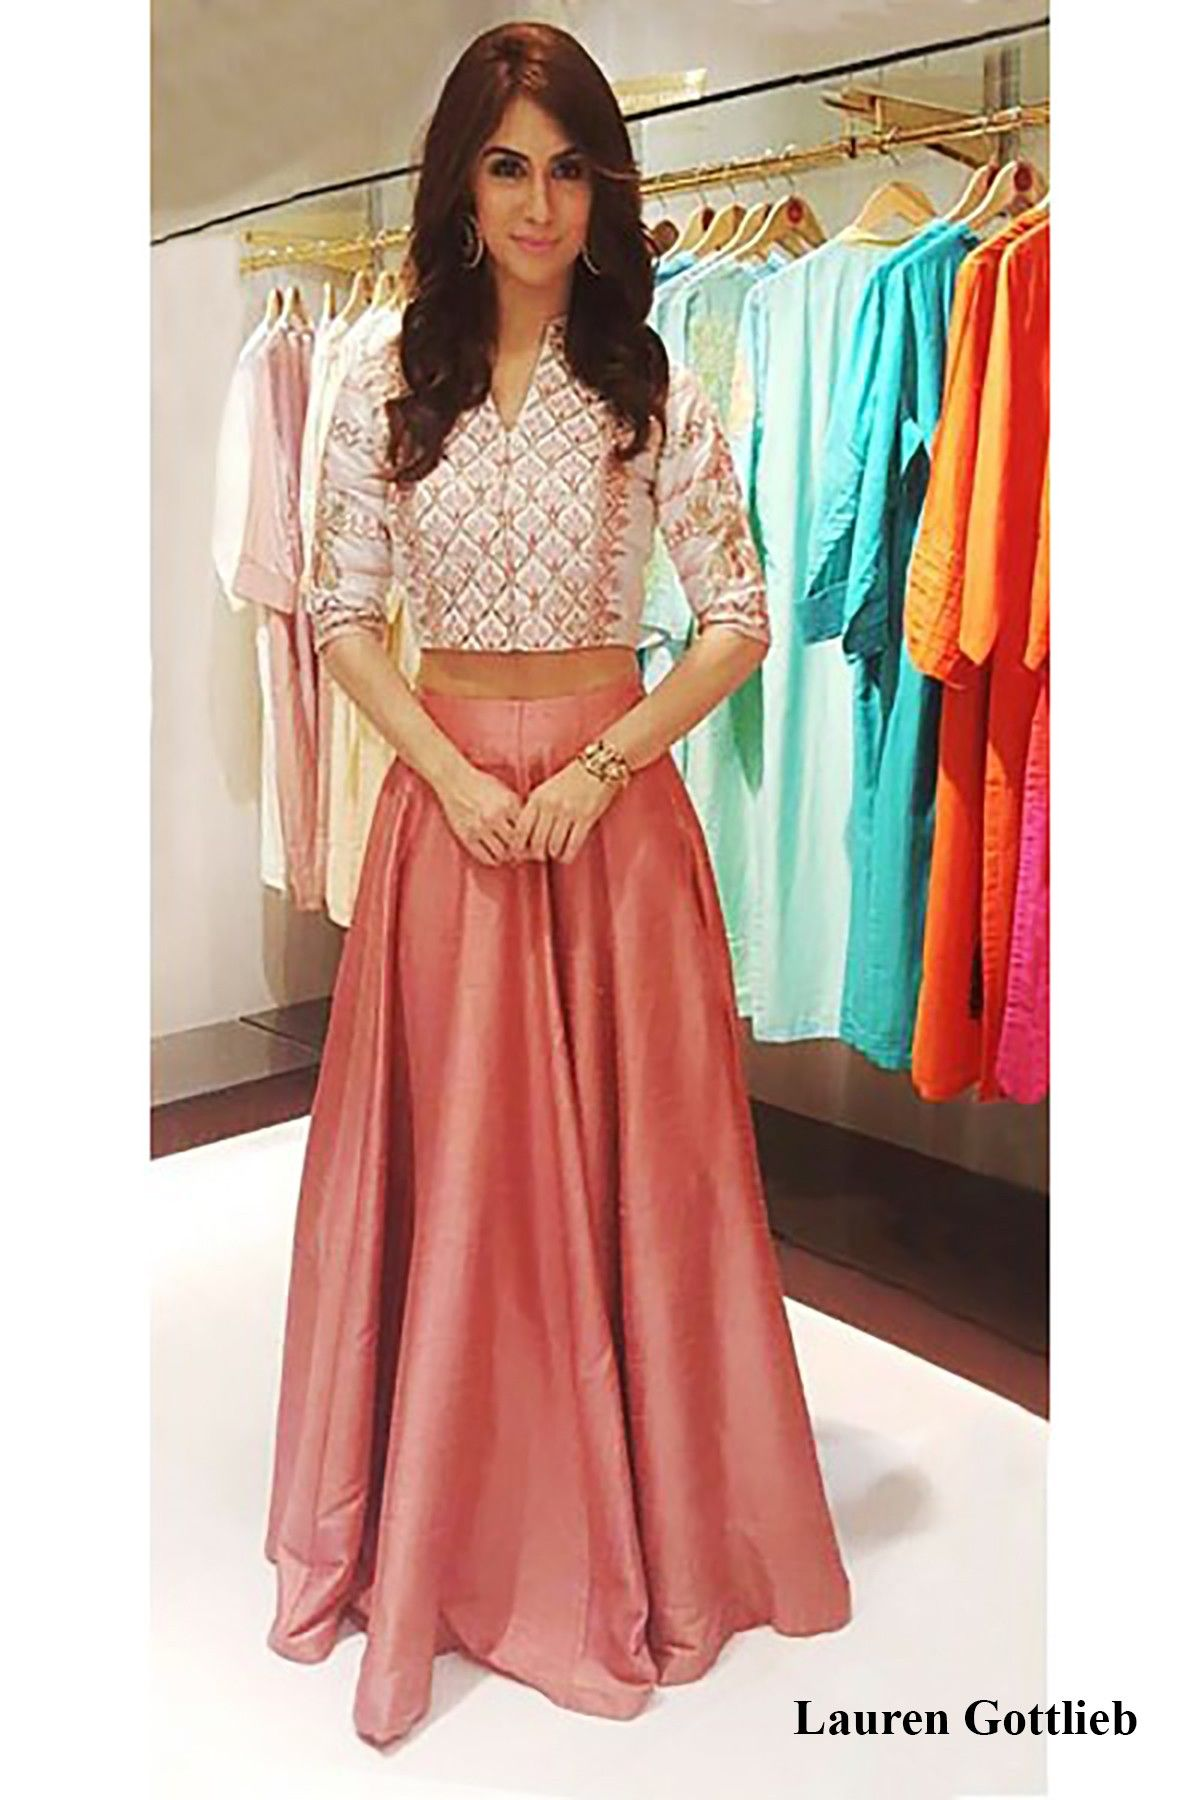 Featuring a crop top and skirt in shades of blush. To wear it on ...